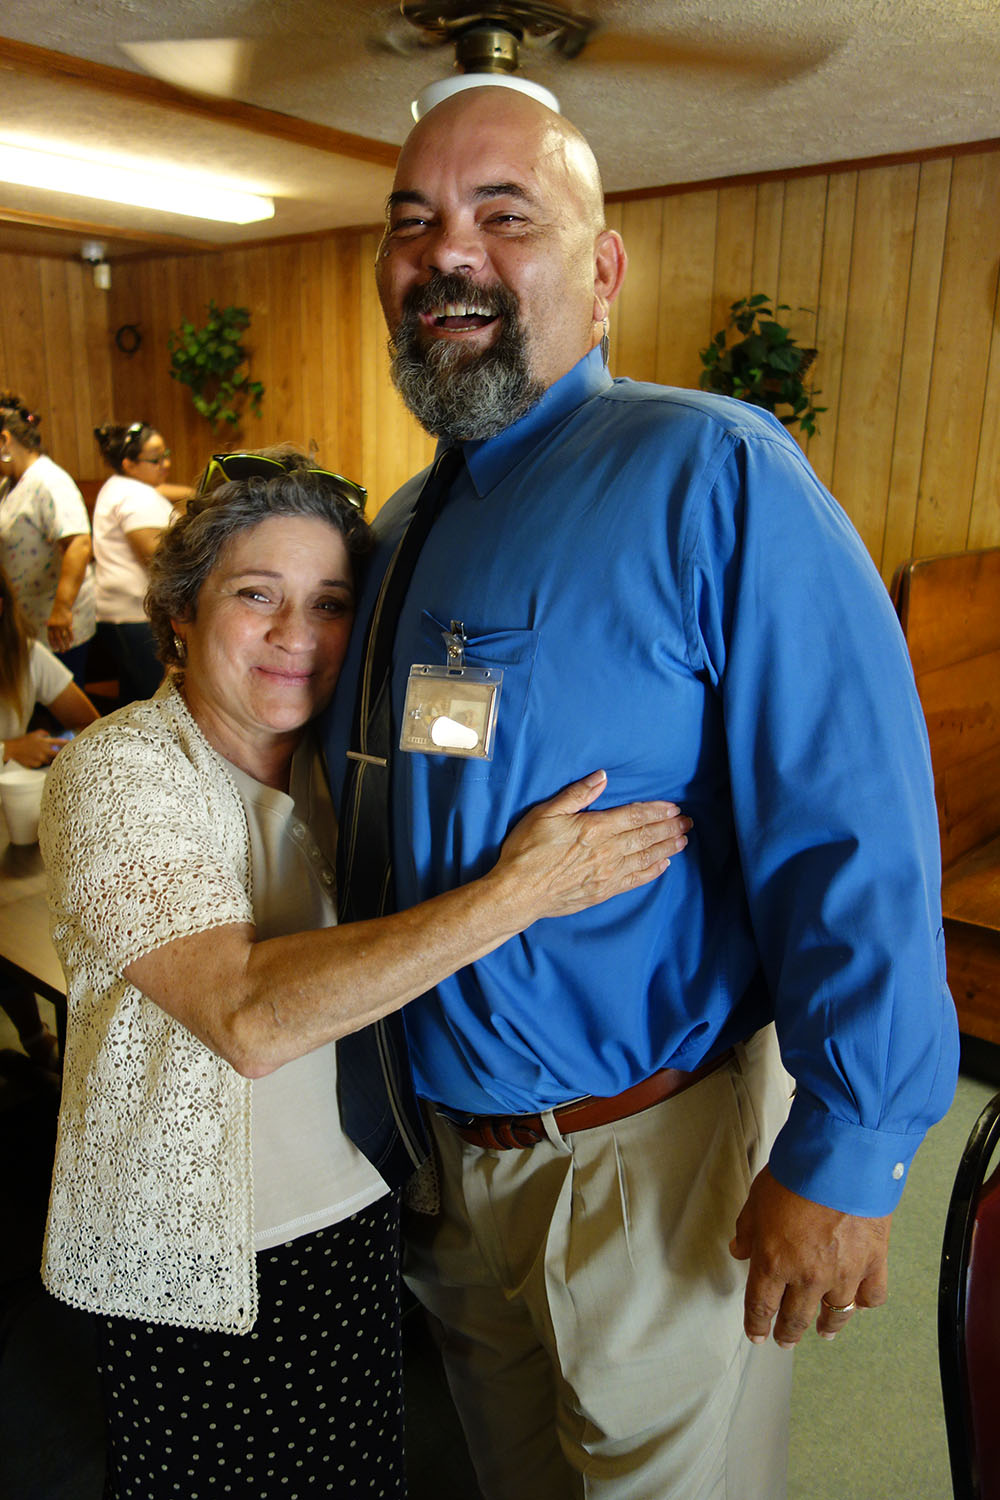 At The Cozy Corner cafe in Prospect, James accepts an affectionate hug from Dr. Cherry Beasley, a long-time friend and admirer. (Jock Lauterer photo)